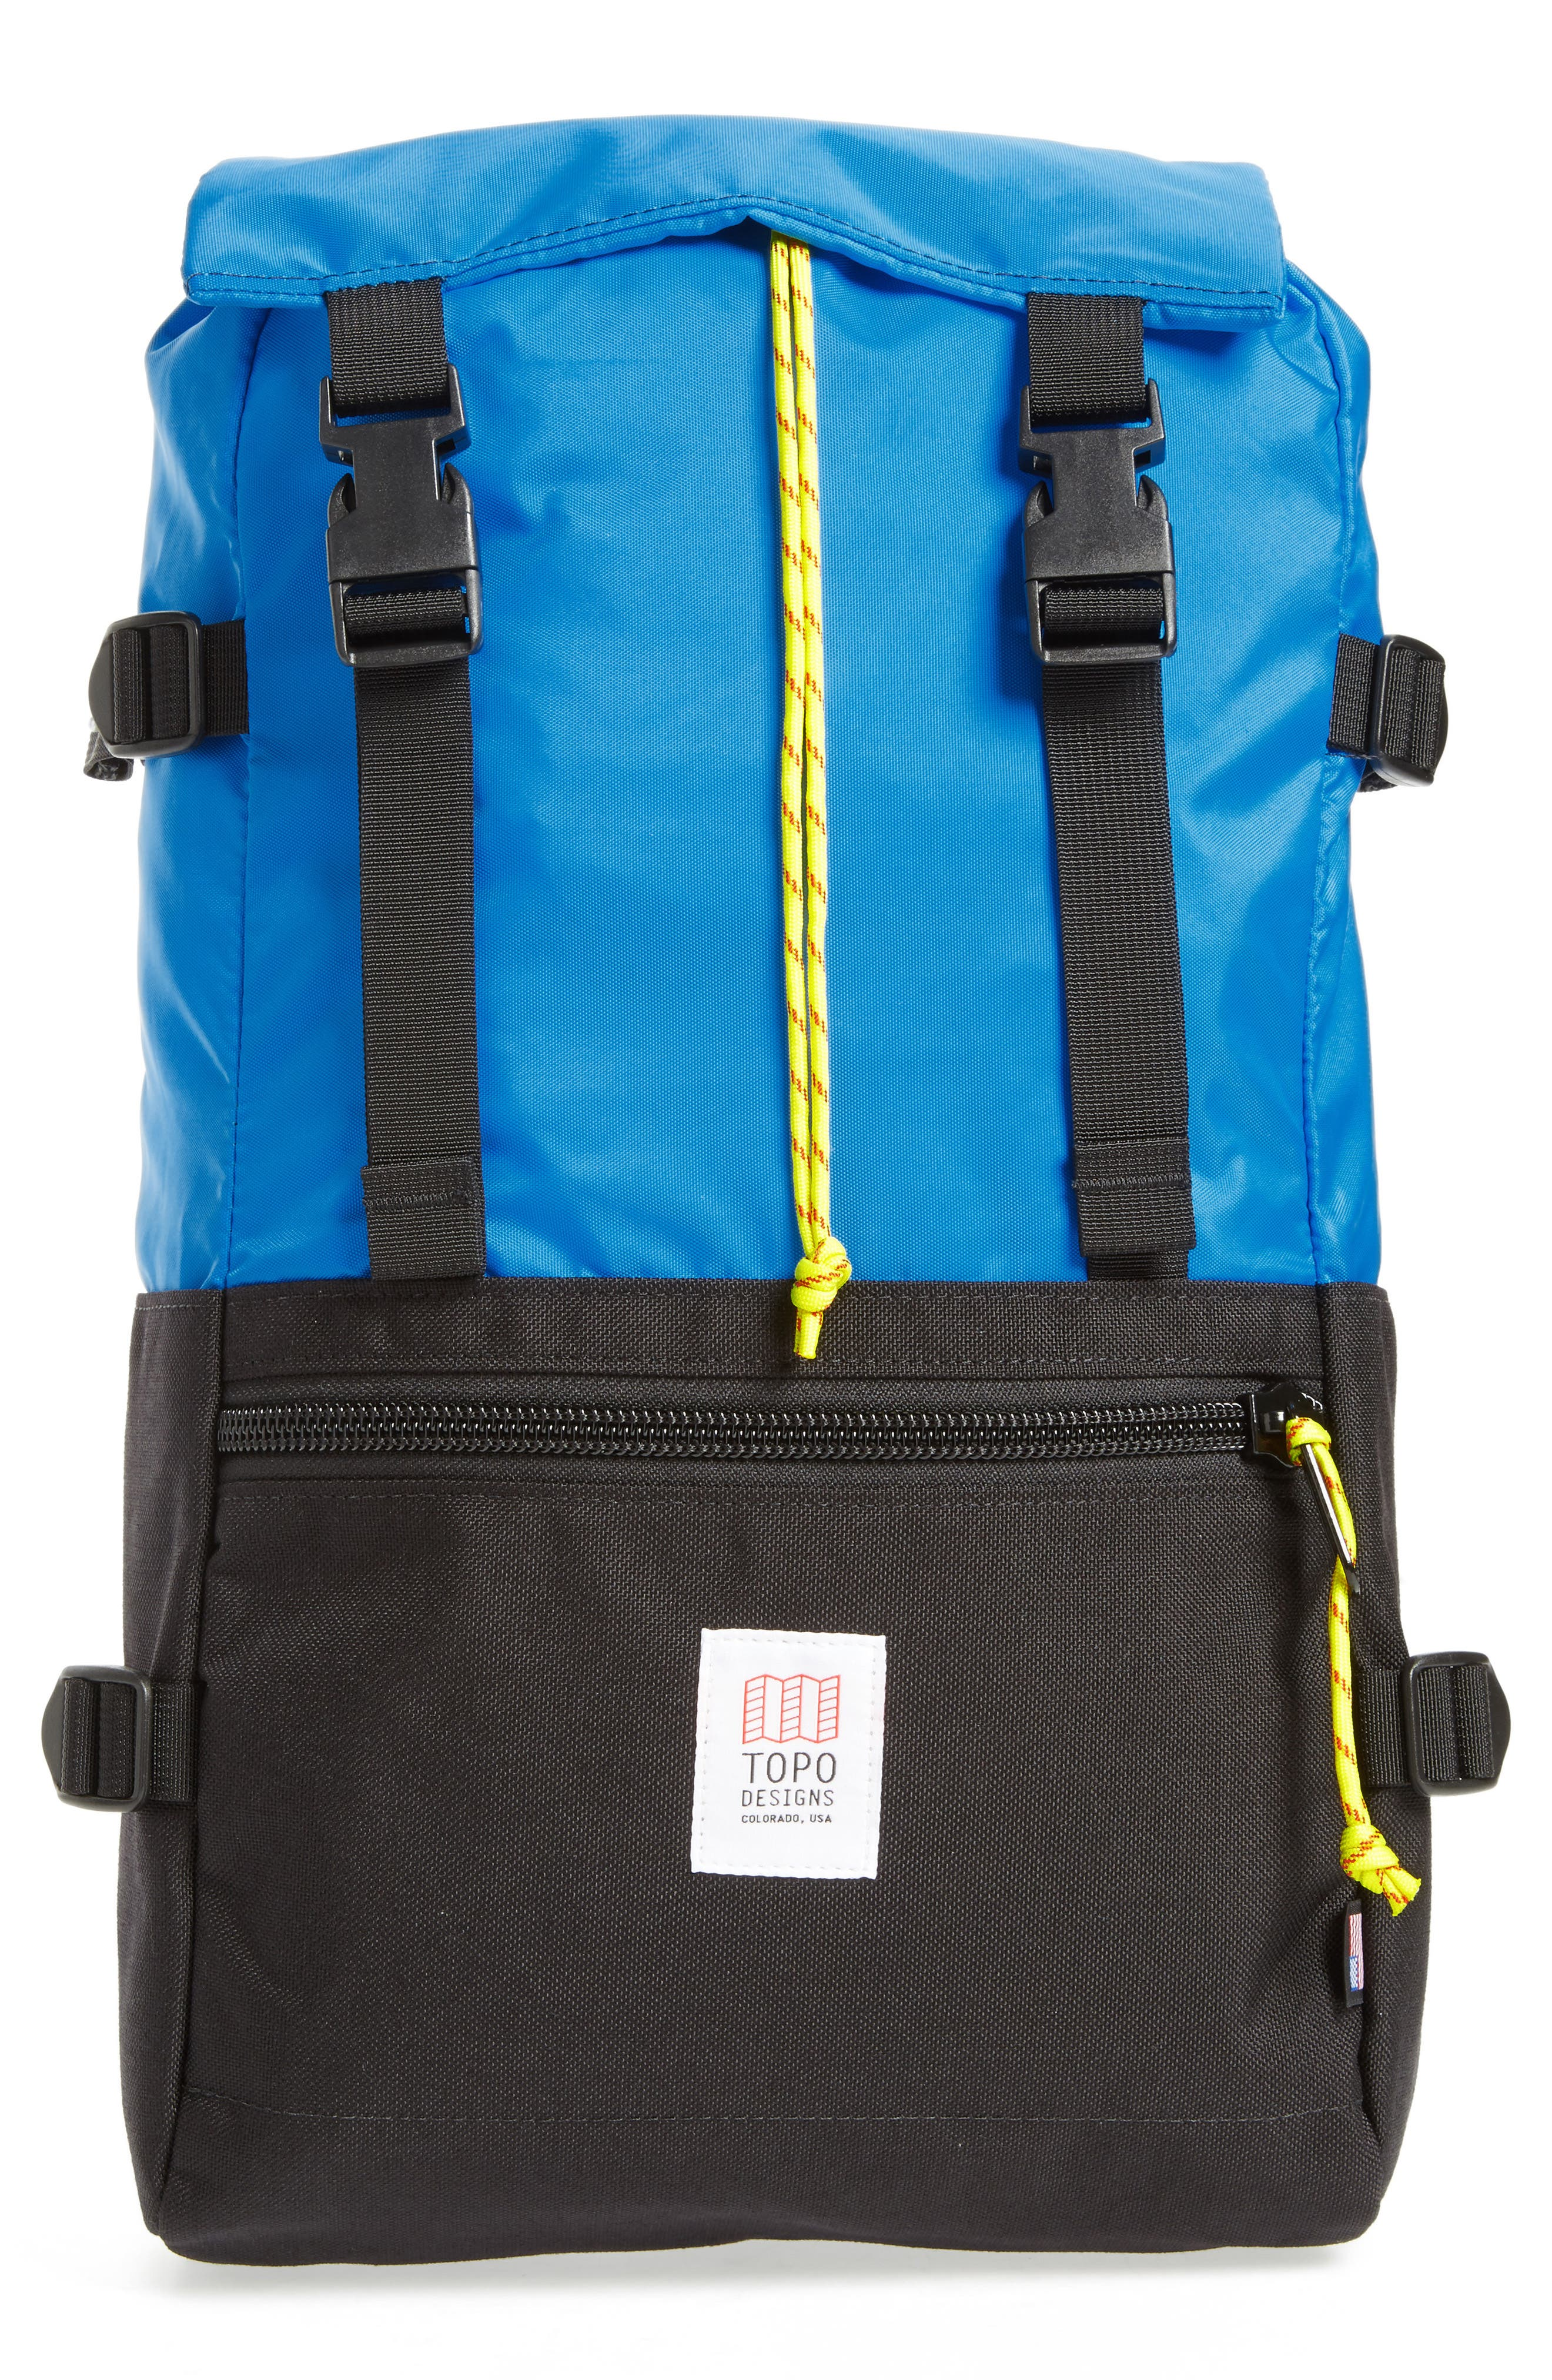 Topo Designs Rover Backpack - Blue